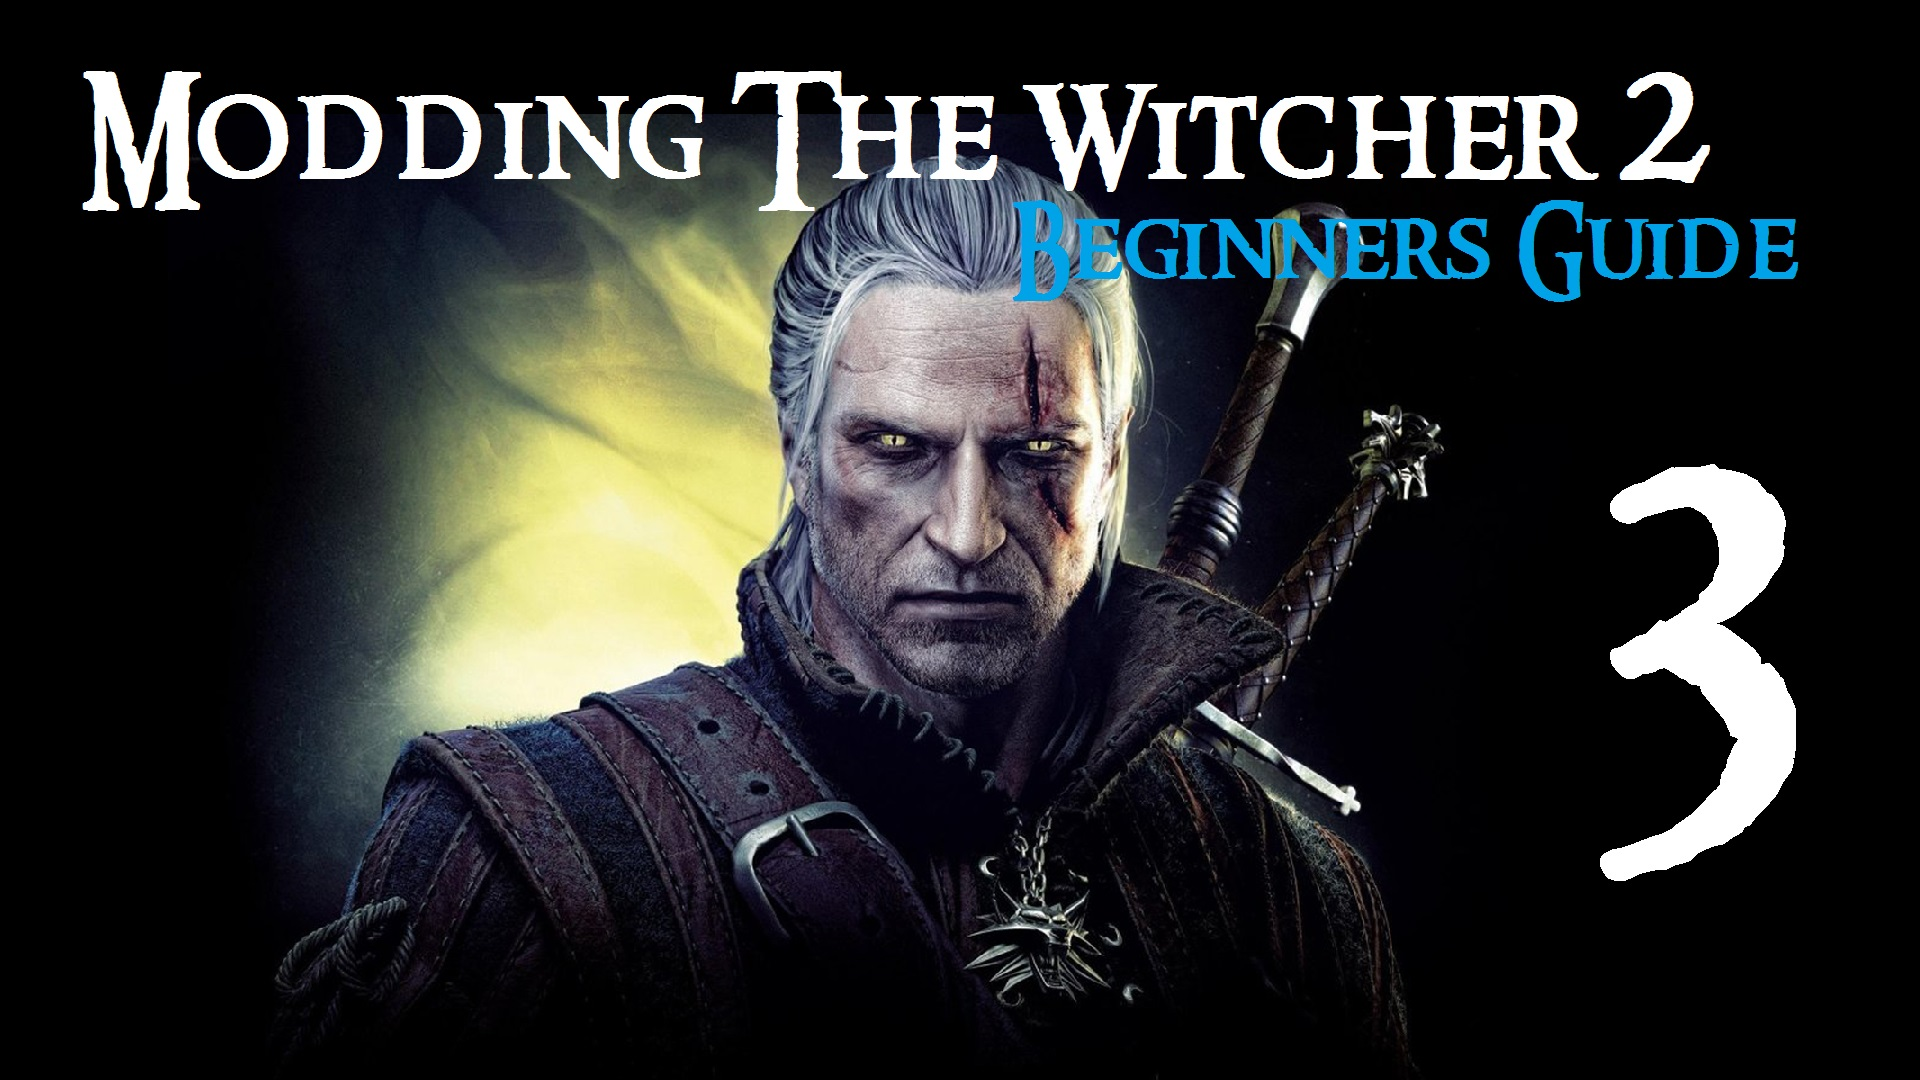 Modding The Witcher 2 3